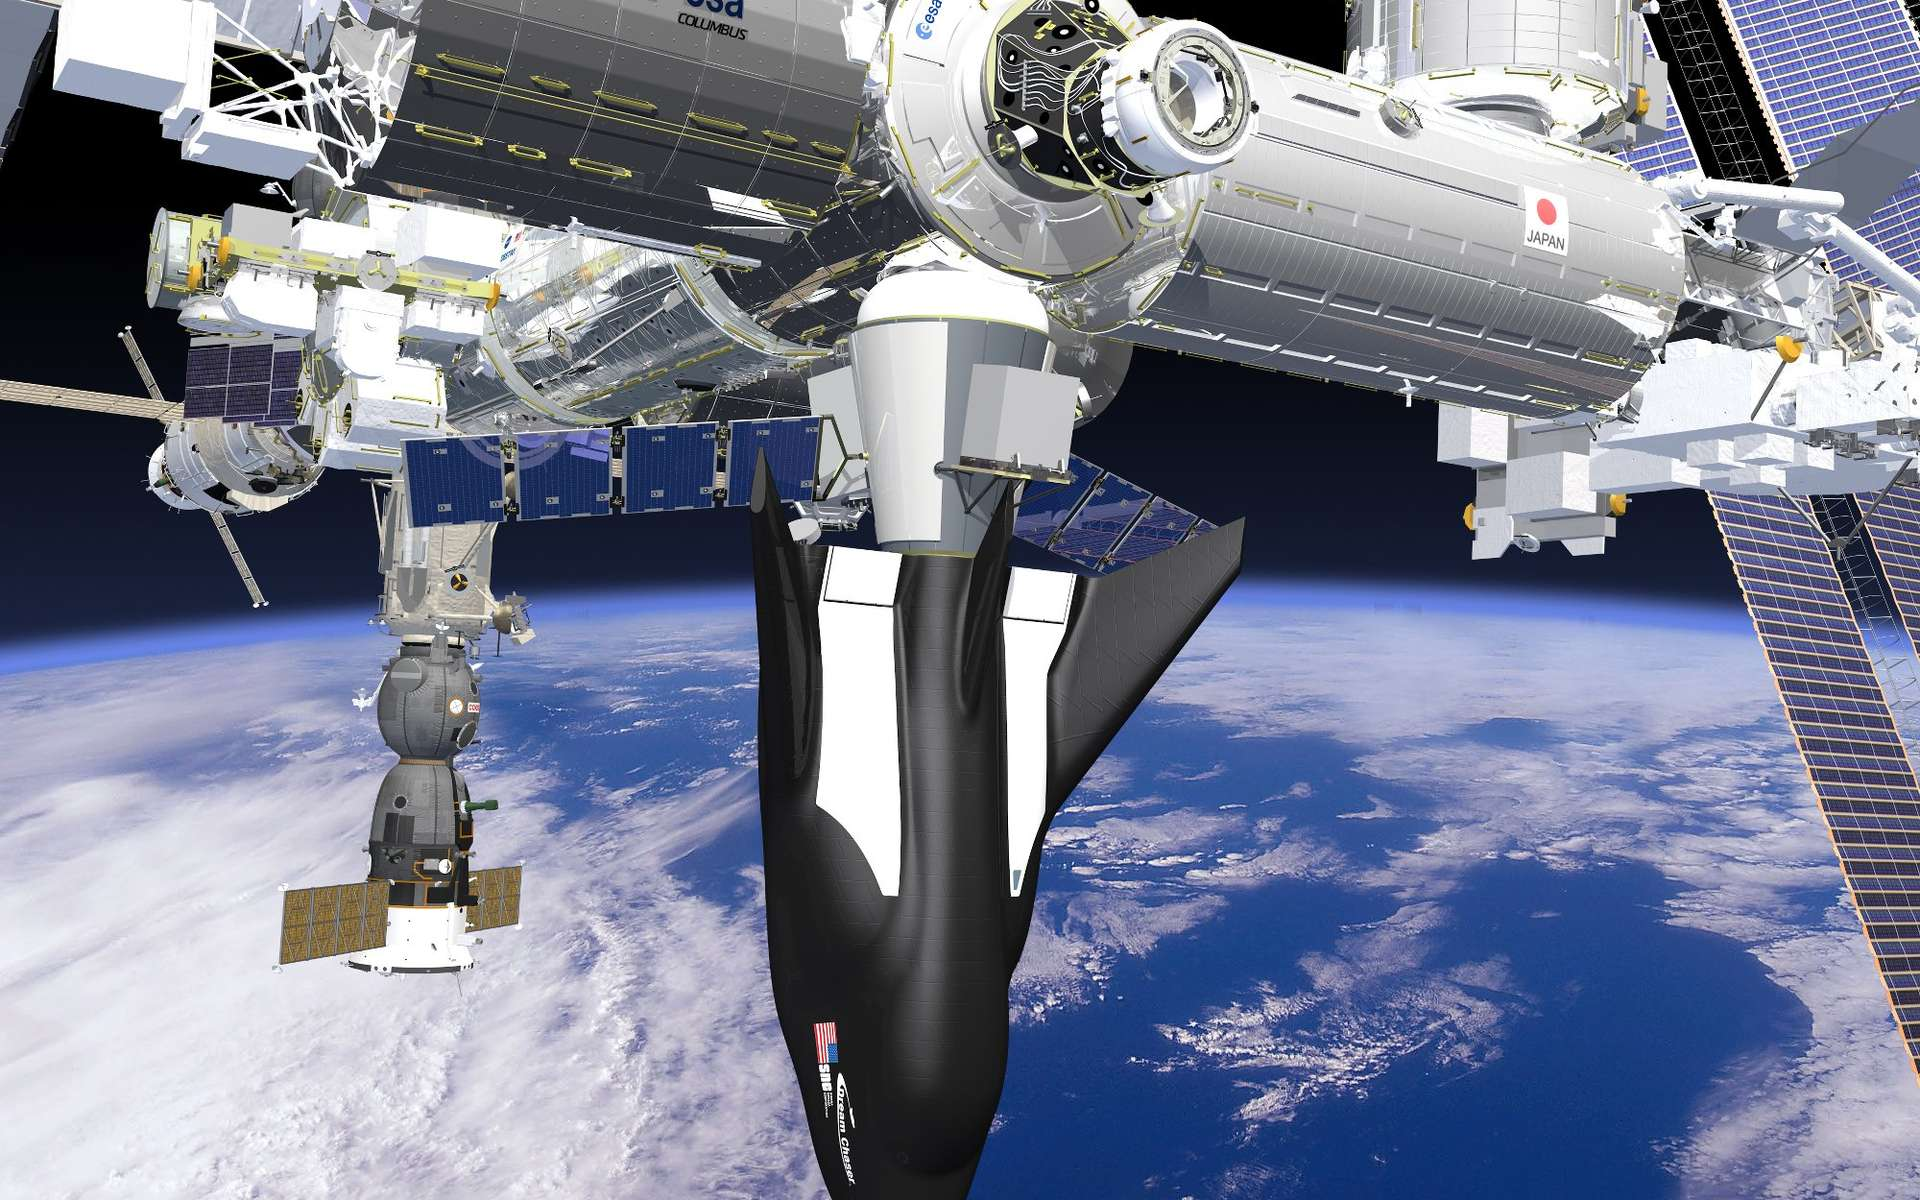 La version cargo du Dream Chaser de Sierra Nevada a décroché une partie du deuxième contrat de ravitaillement en fret de la Station spatiale internationale qu'elle pourra ravitailler au côté du Dragon de SpaceX et du Cygnus d'Orbital. © Sierra Nevada